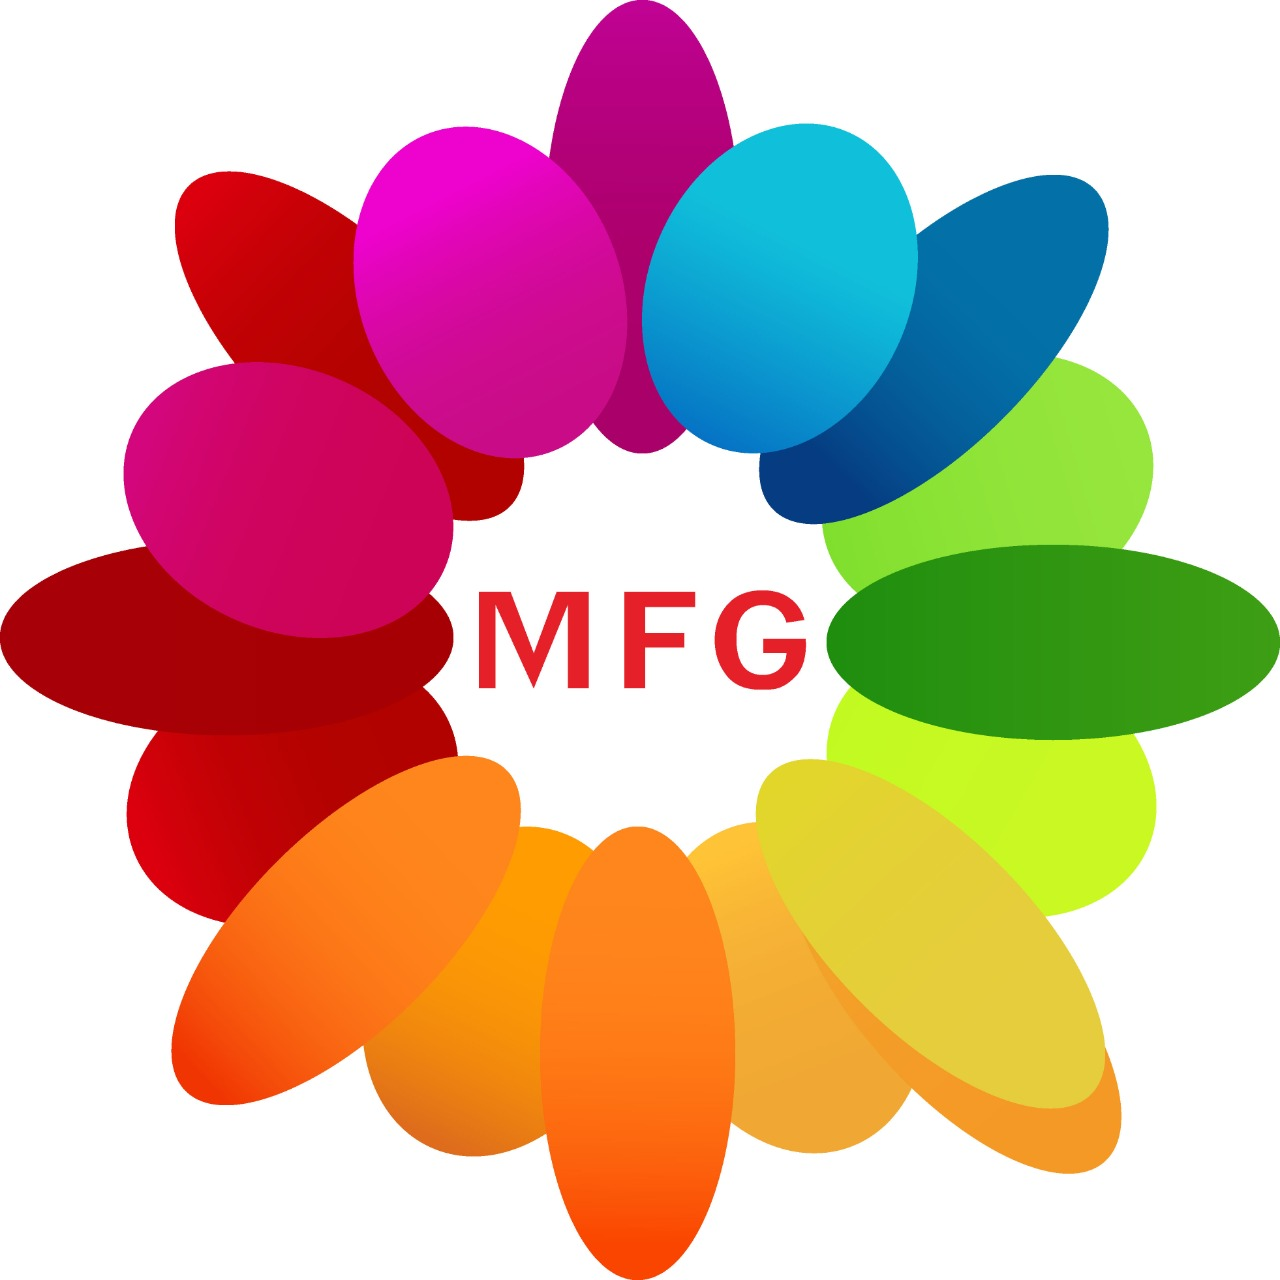 Assorted Chocolate Basket With 16 pcs Ferero Rocher Chocolates With 2 Pack Of Tobleron